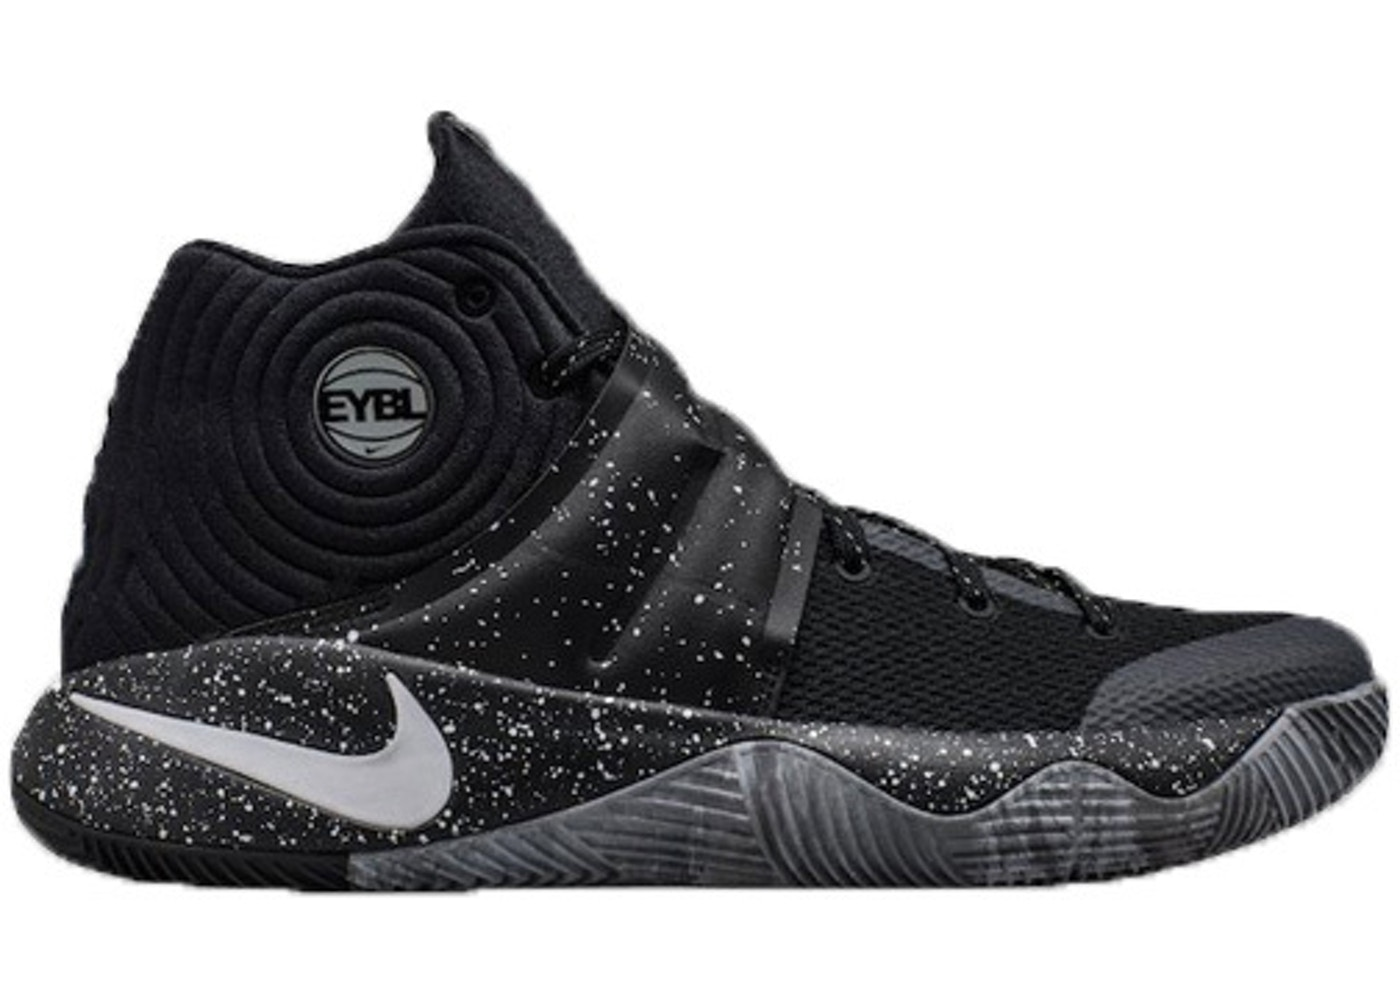 the best attitude 65e44 d057c Nike Basketball Kyrie Shoes - Average Sale Price